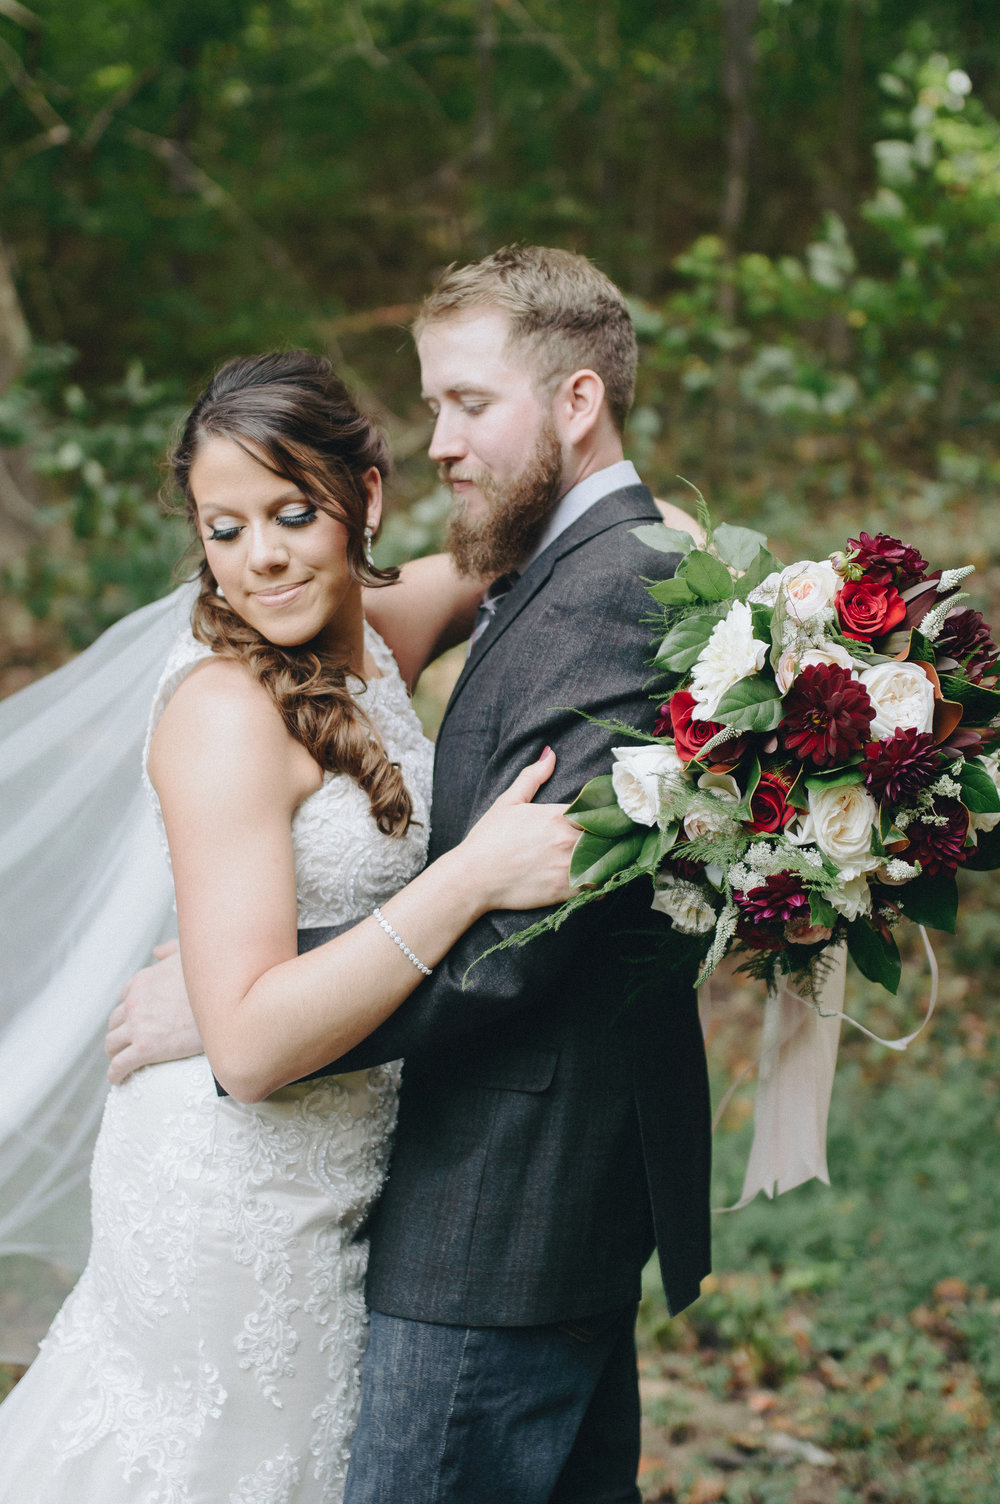 Lauren_Dustin_Wedding - EDITS-10.jpg